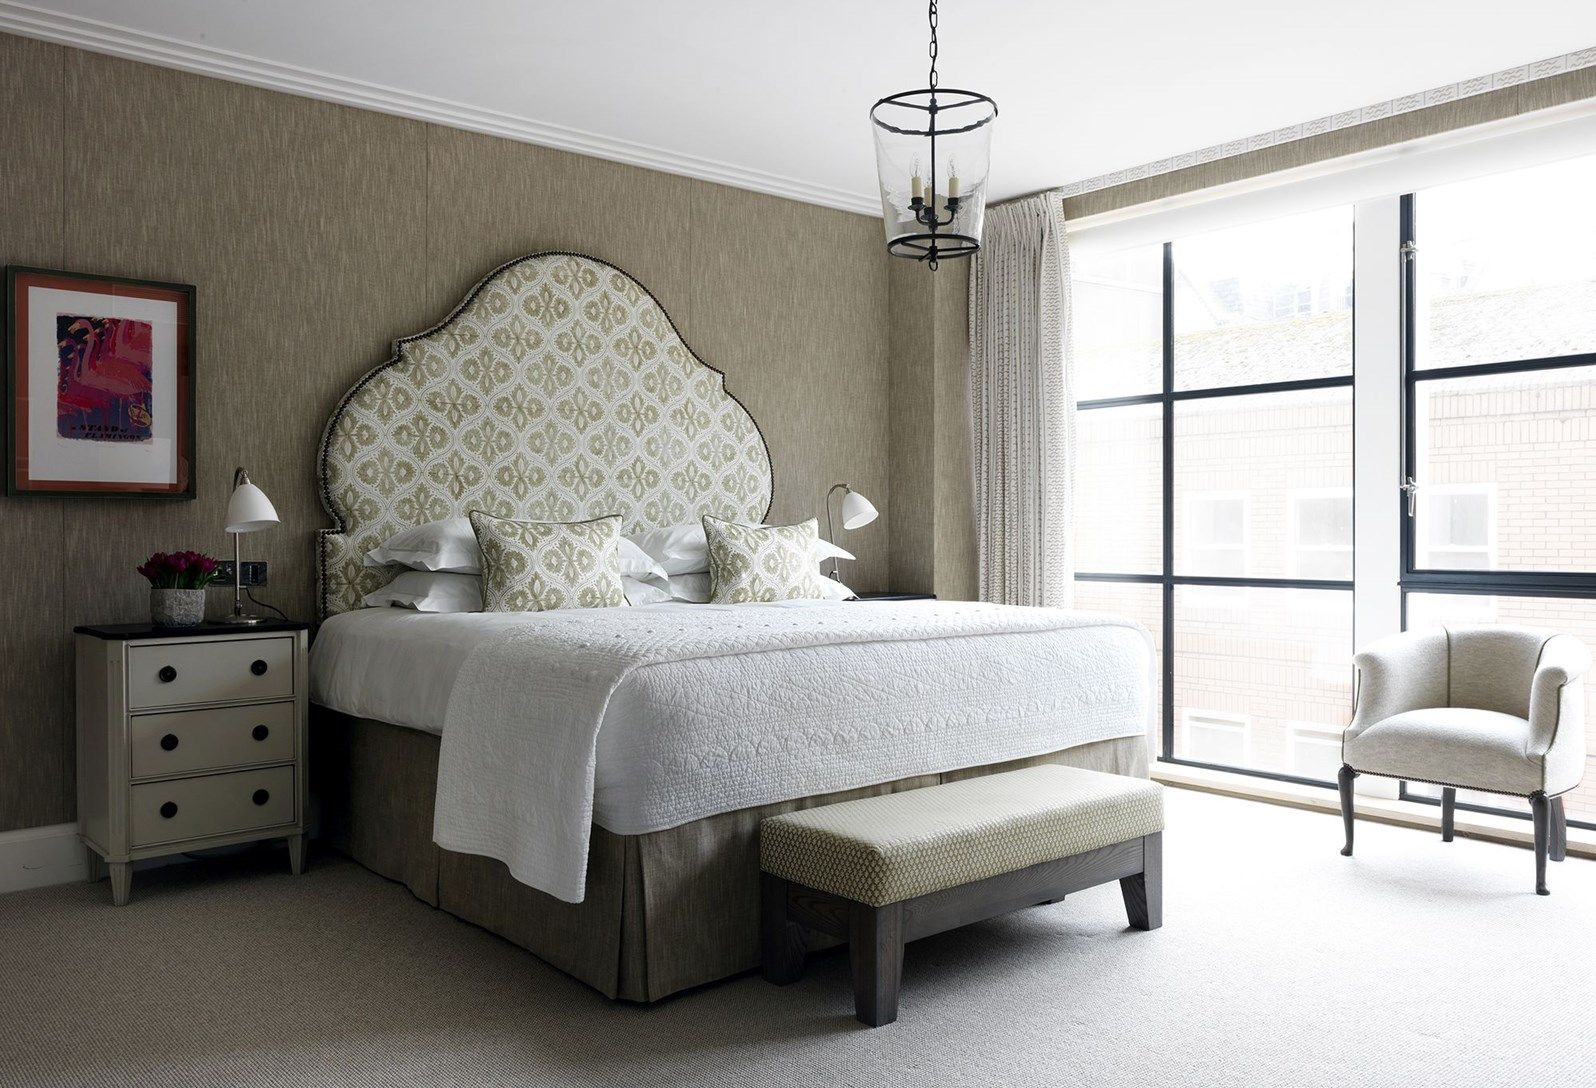 Firmdale Hotels Apartment 15 Bedroom interior, 2